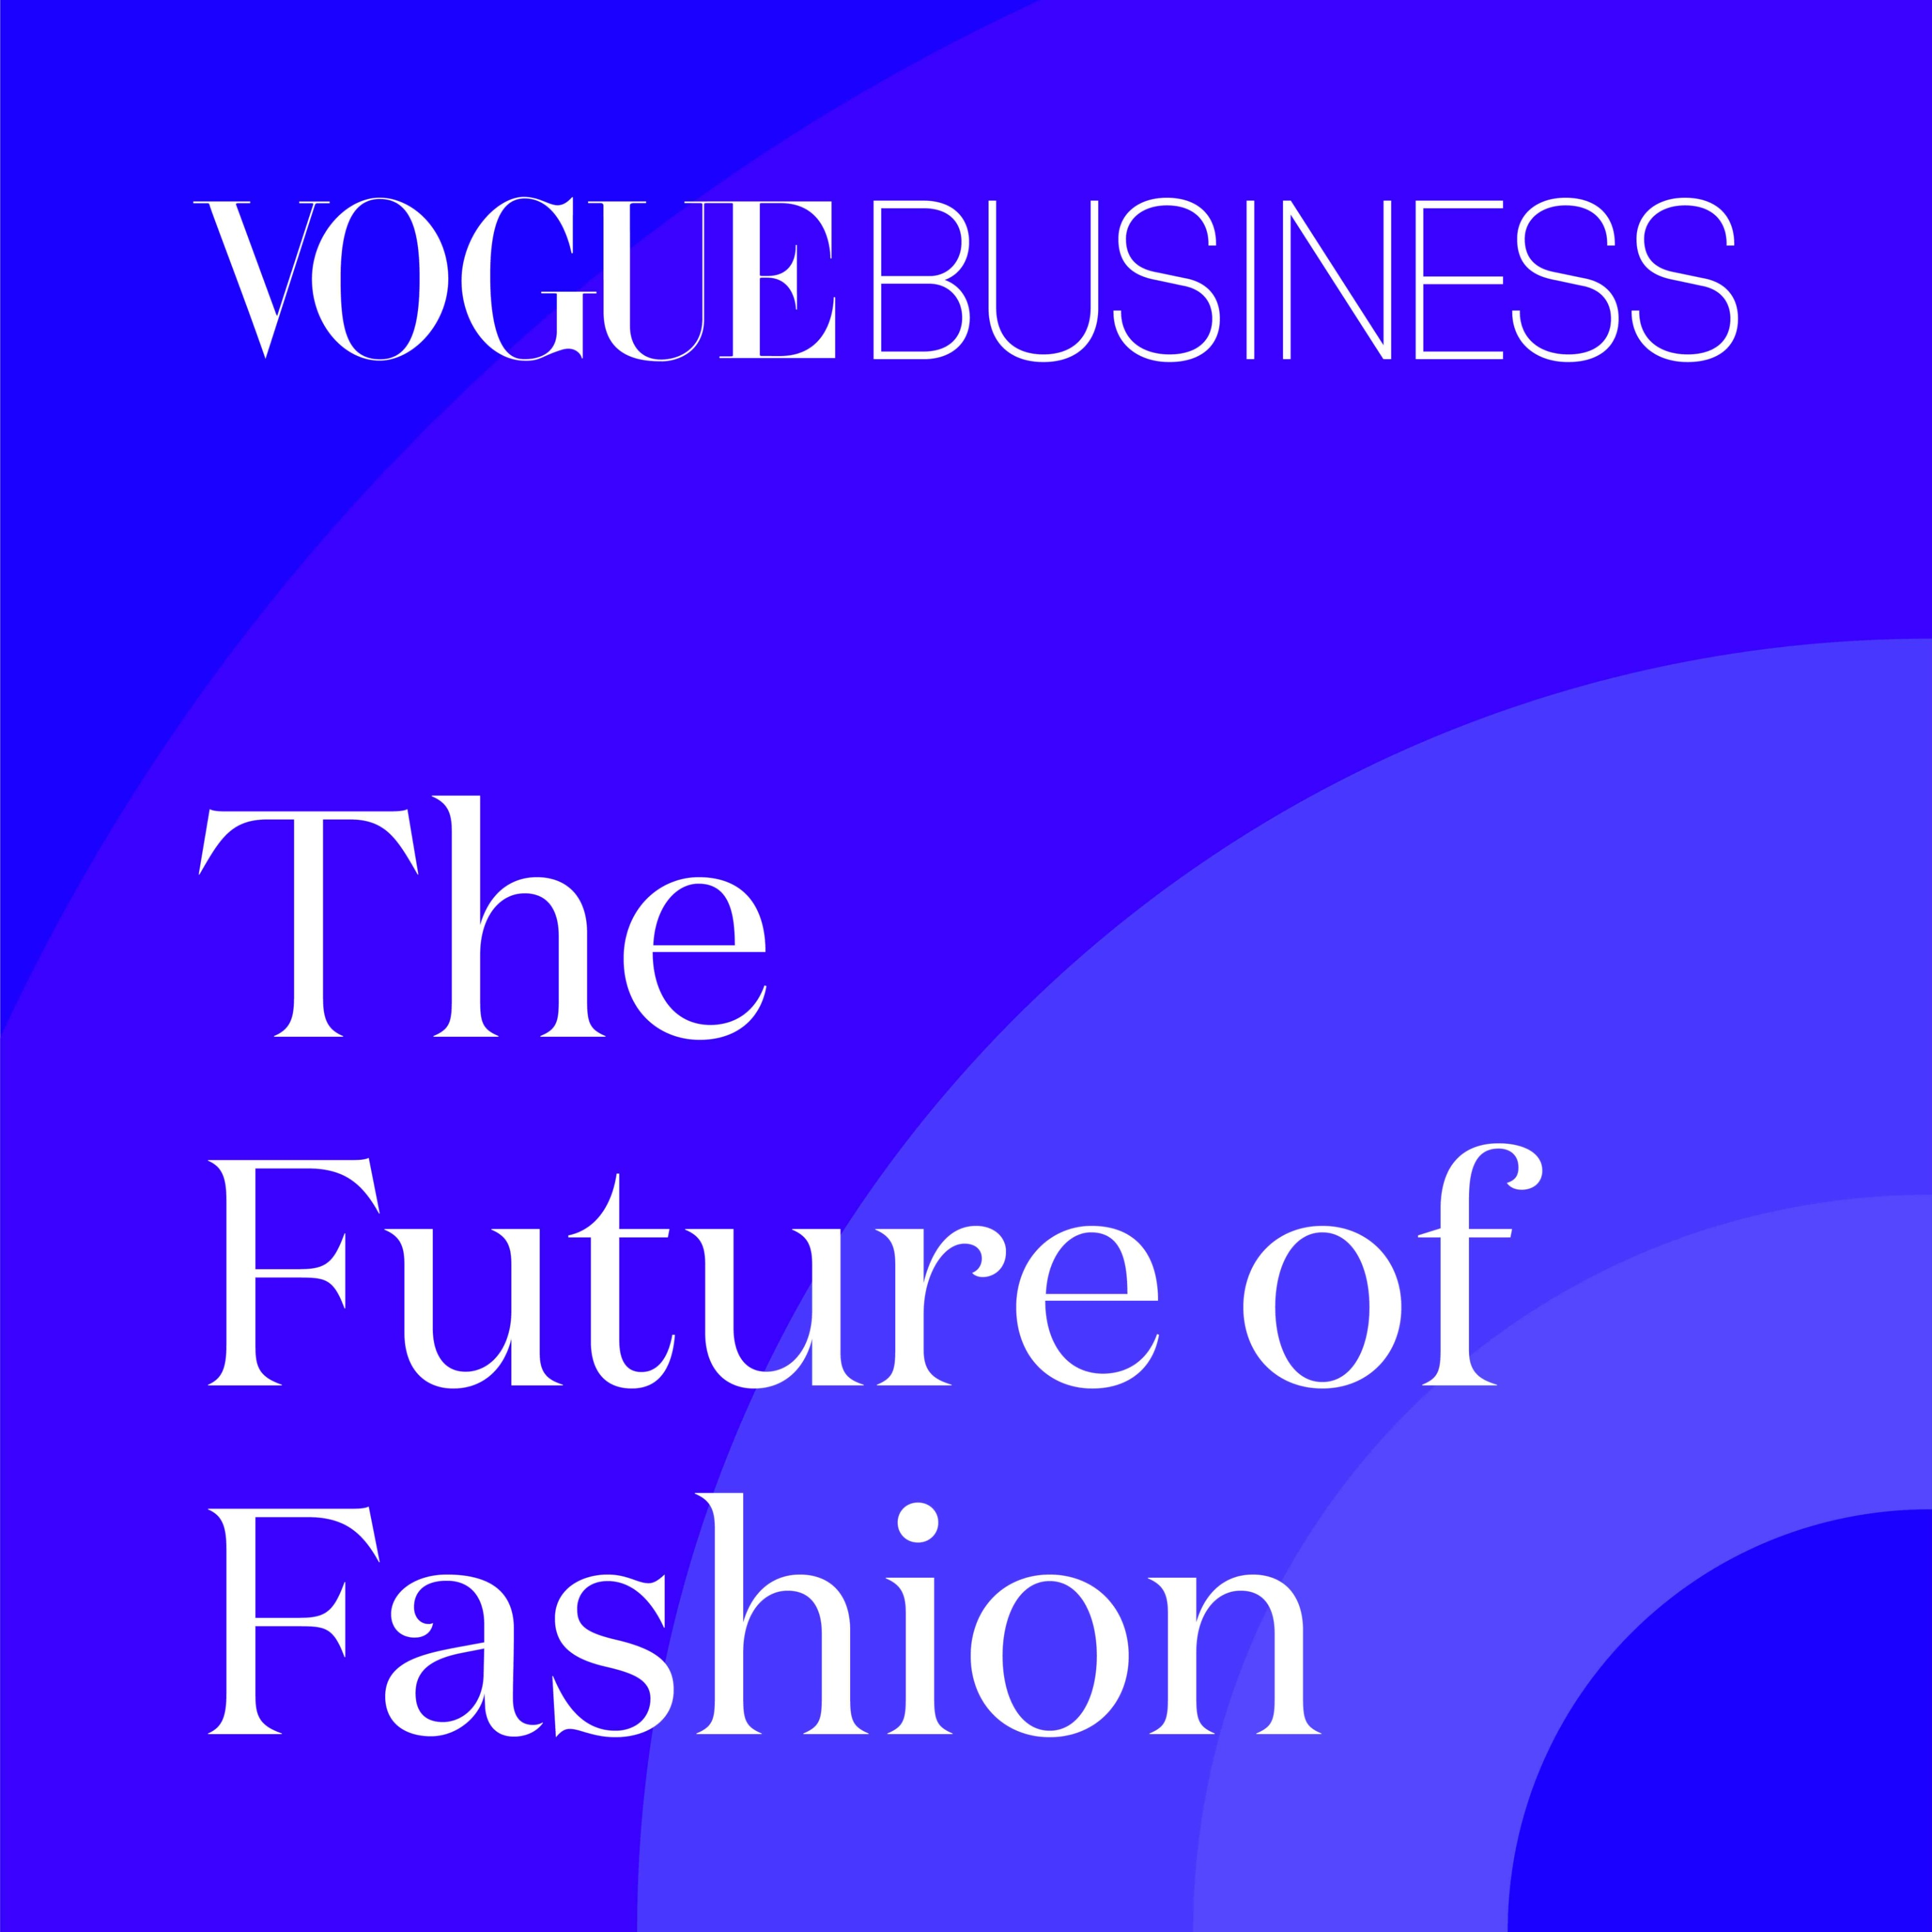 The future of luxury is online